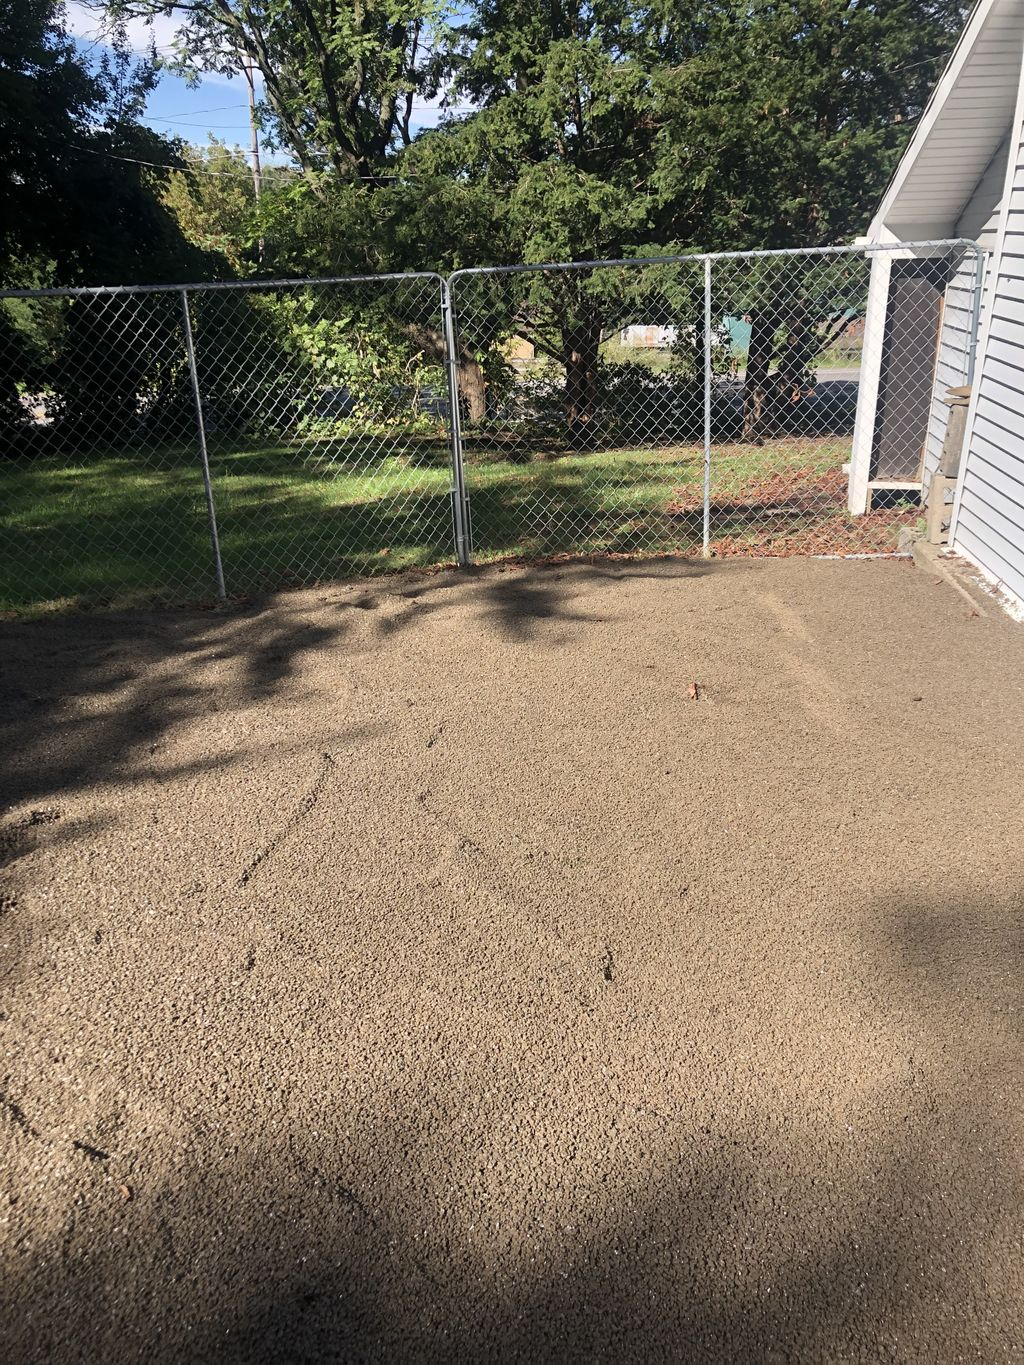 Dog Kennel and Driveway